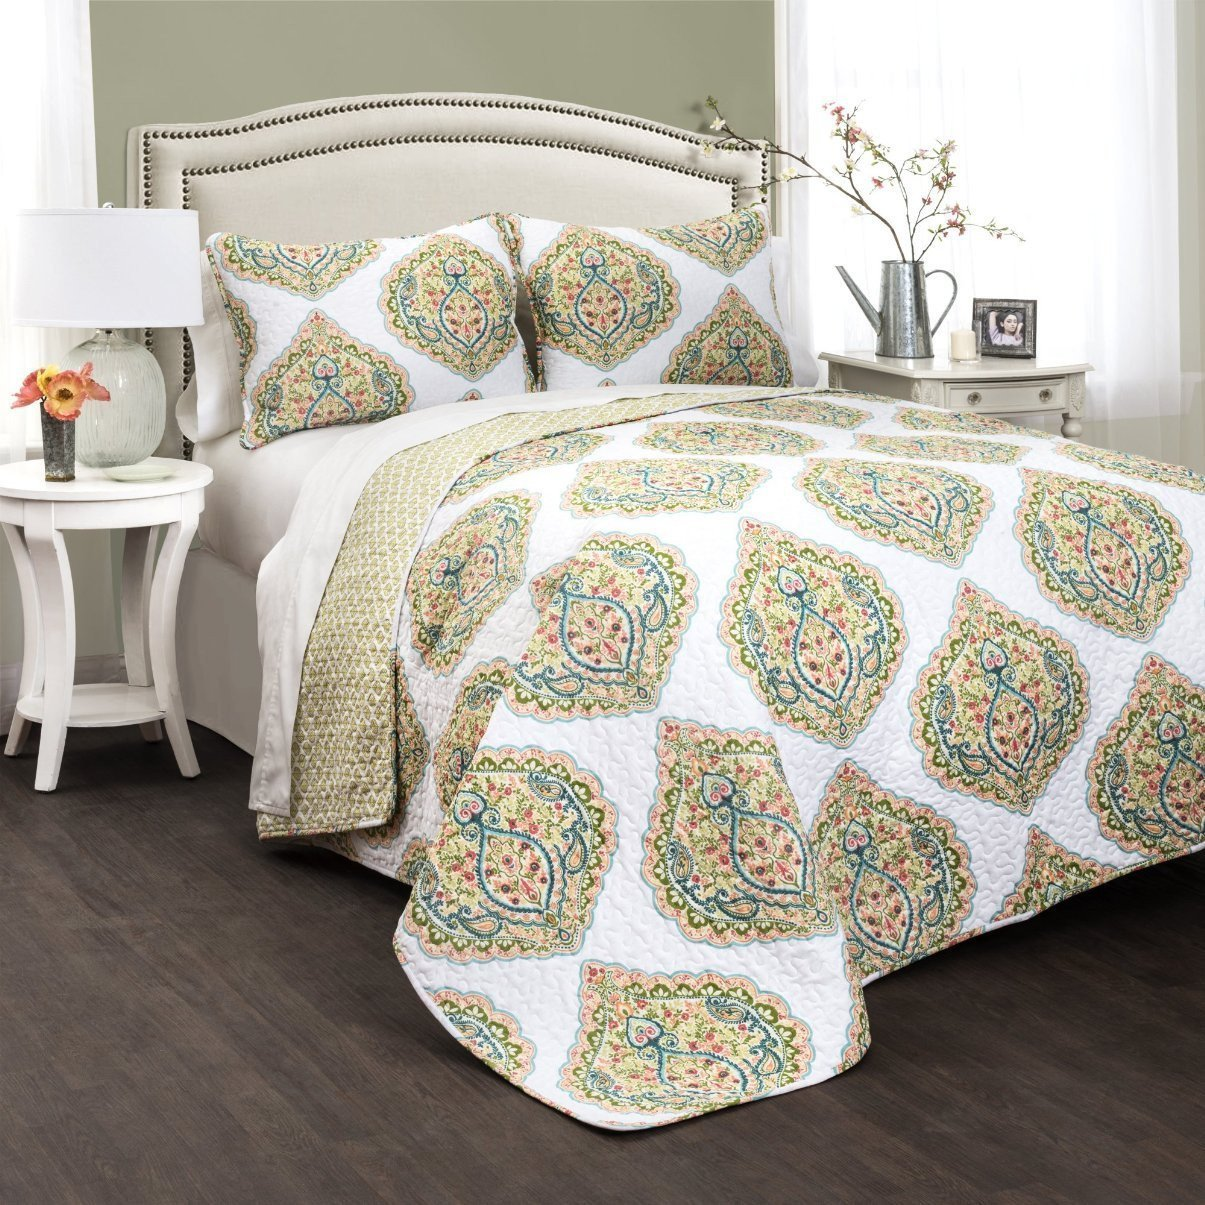 Jolie 3 PC Quilt Bedding Boho Bed Collection-GoGetGlam